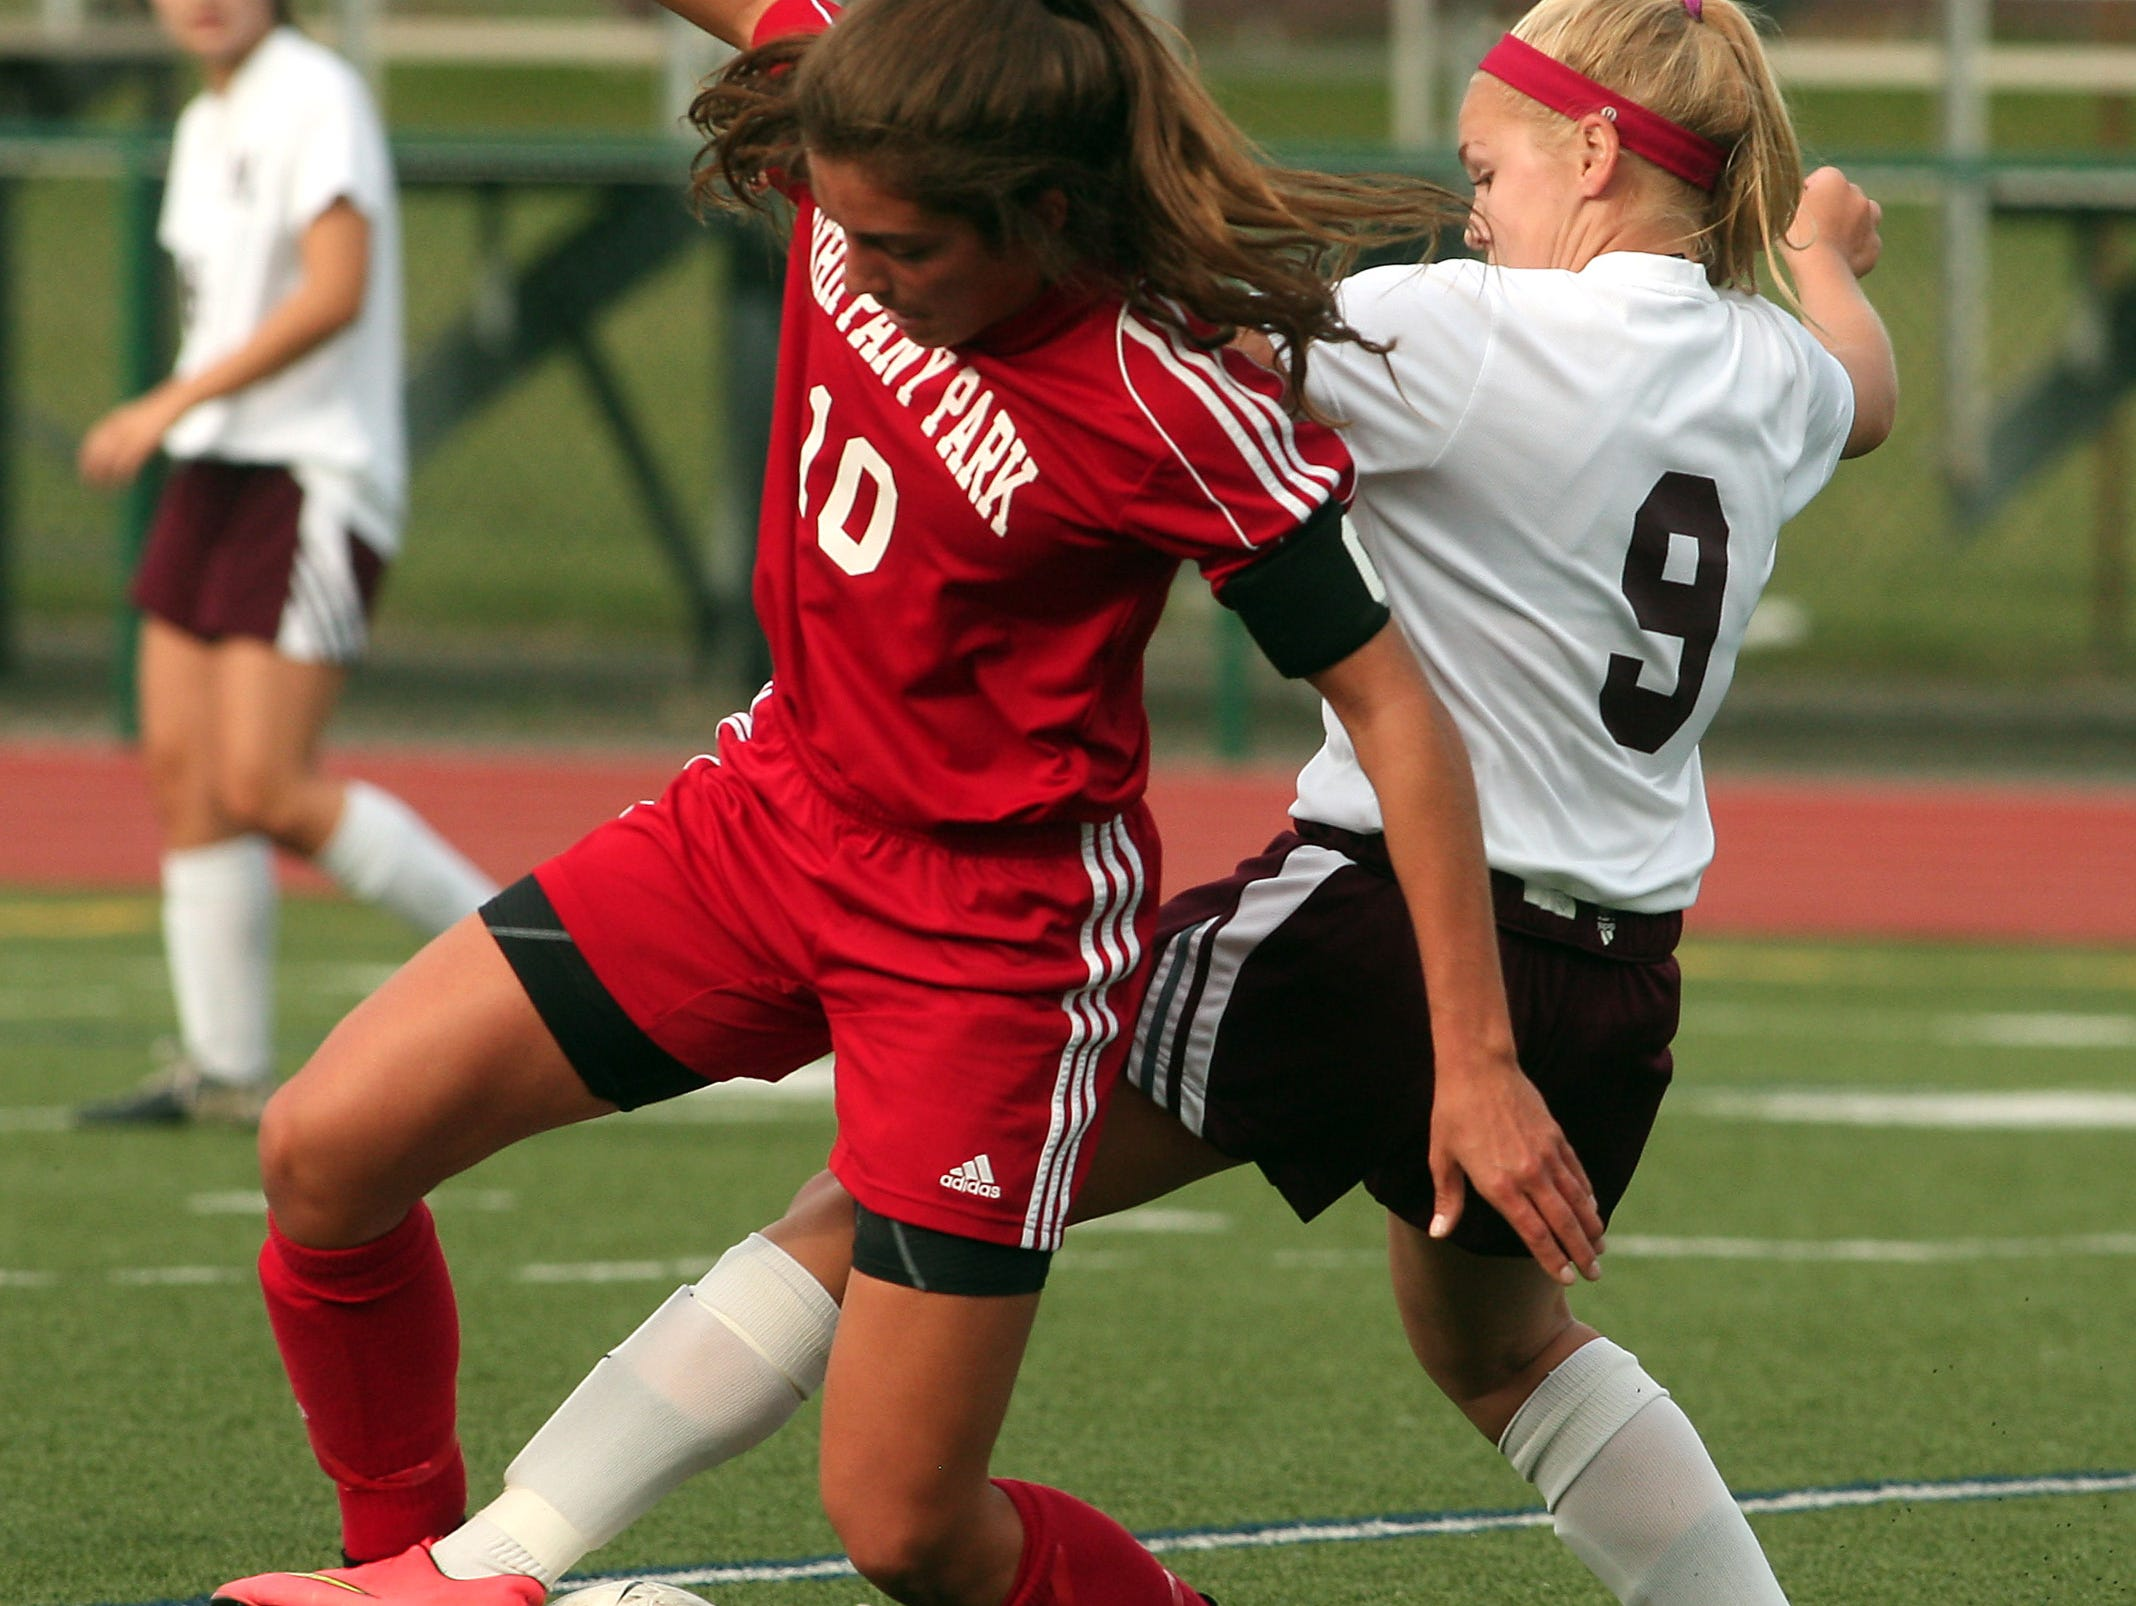 Whippany Park's Gina DelloRusso, l, and Madison's Emily Pruzik battle for the ball during their girls soccer matchup. September 22, 2015, Madison, NJ.